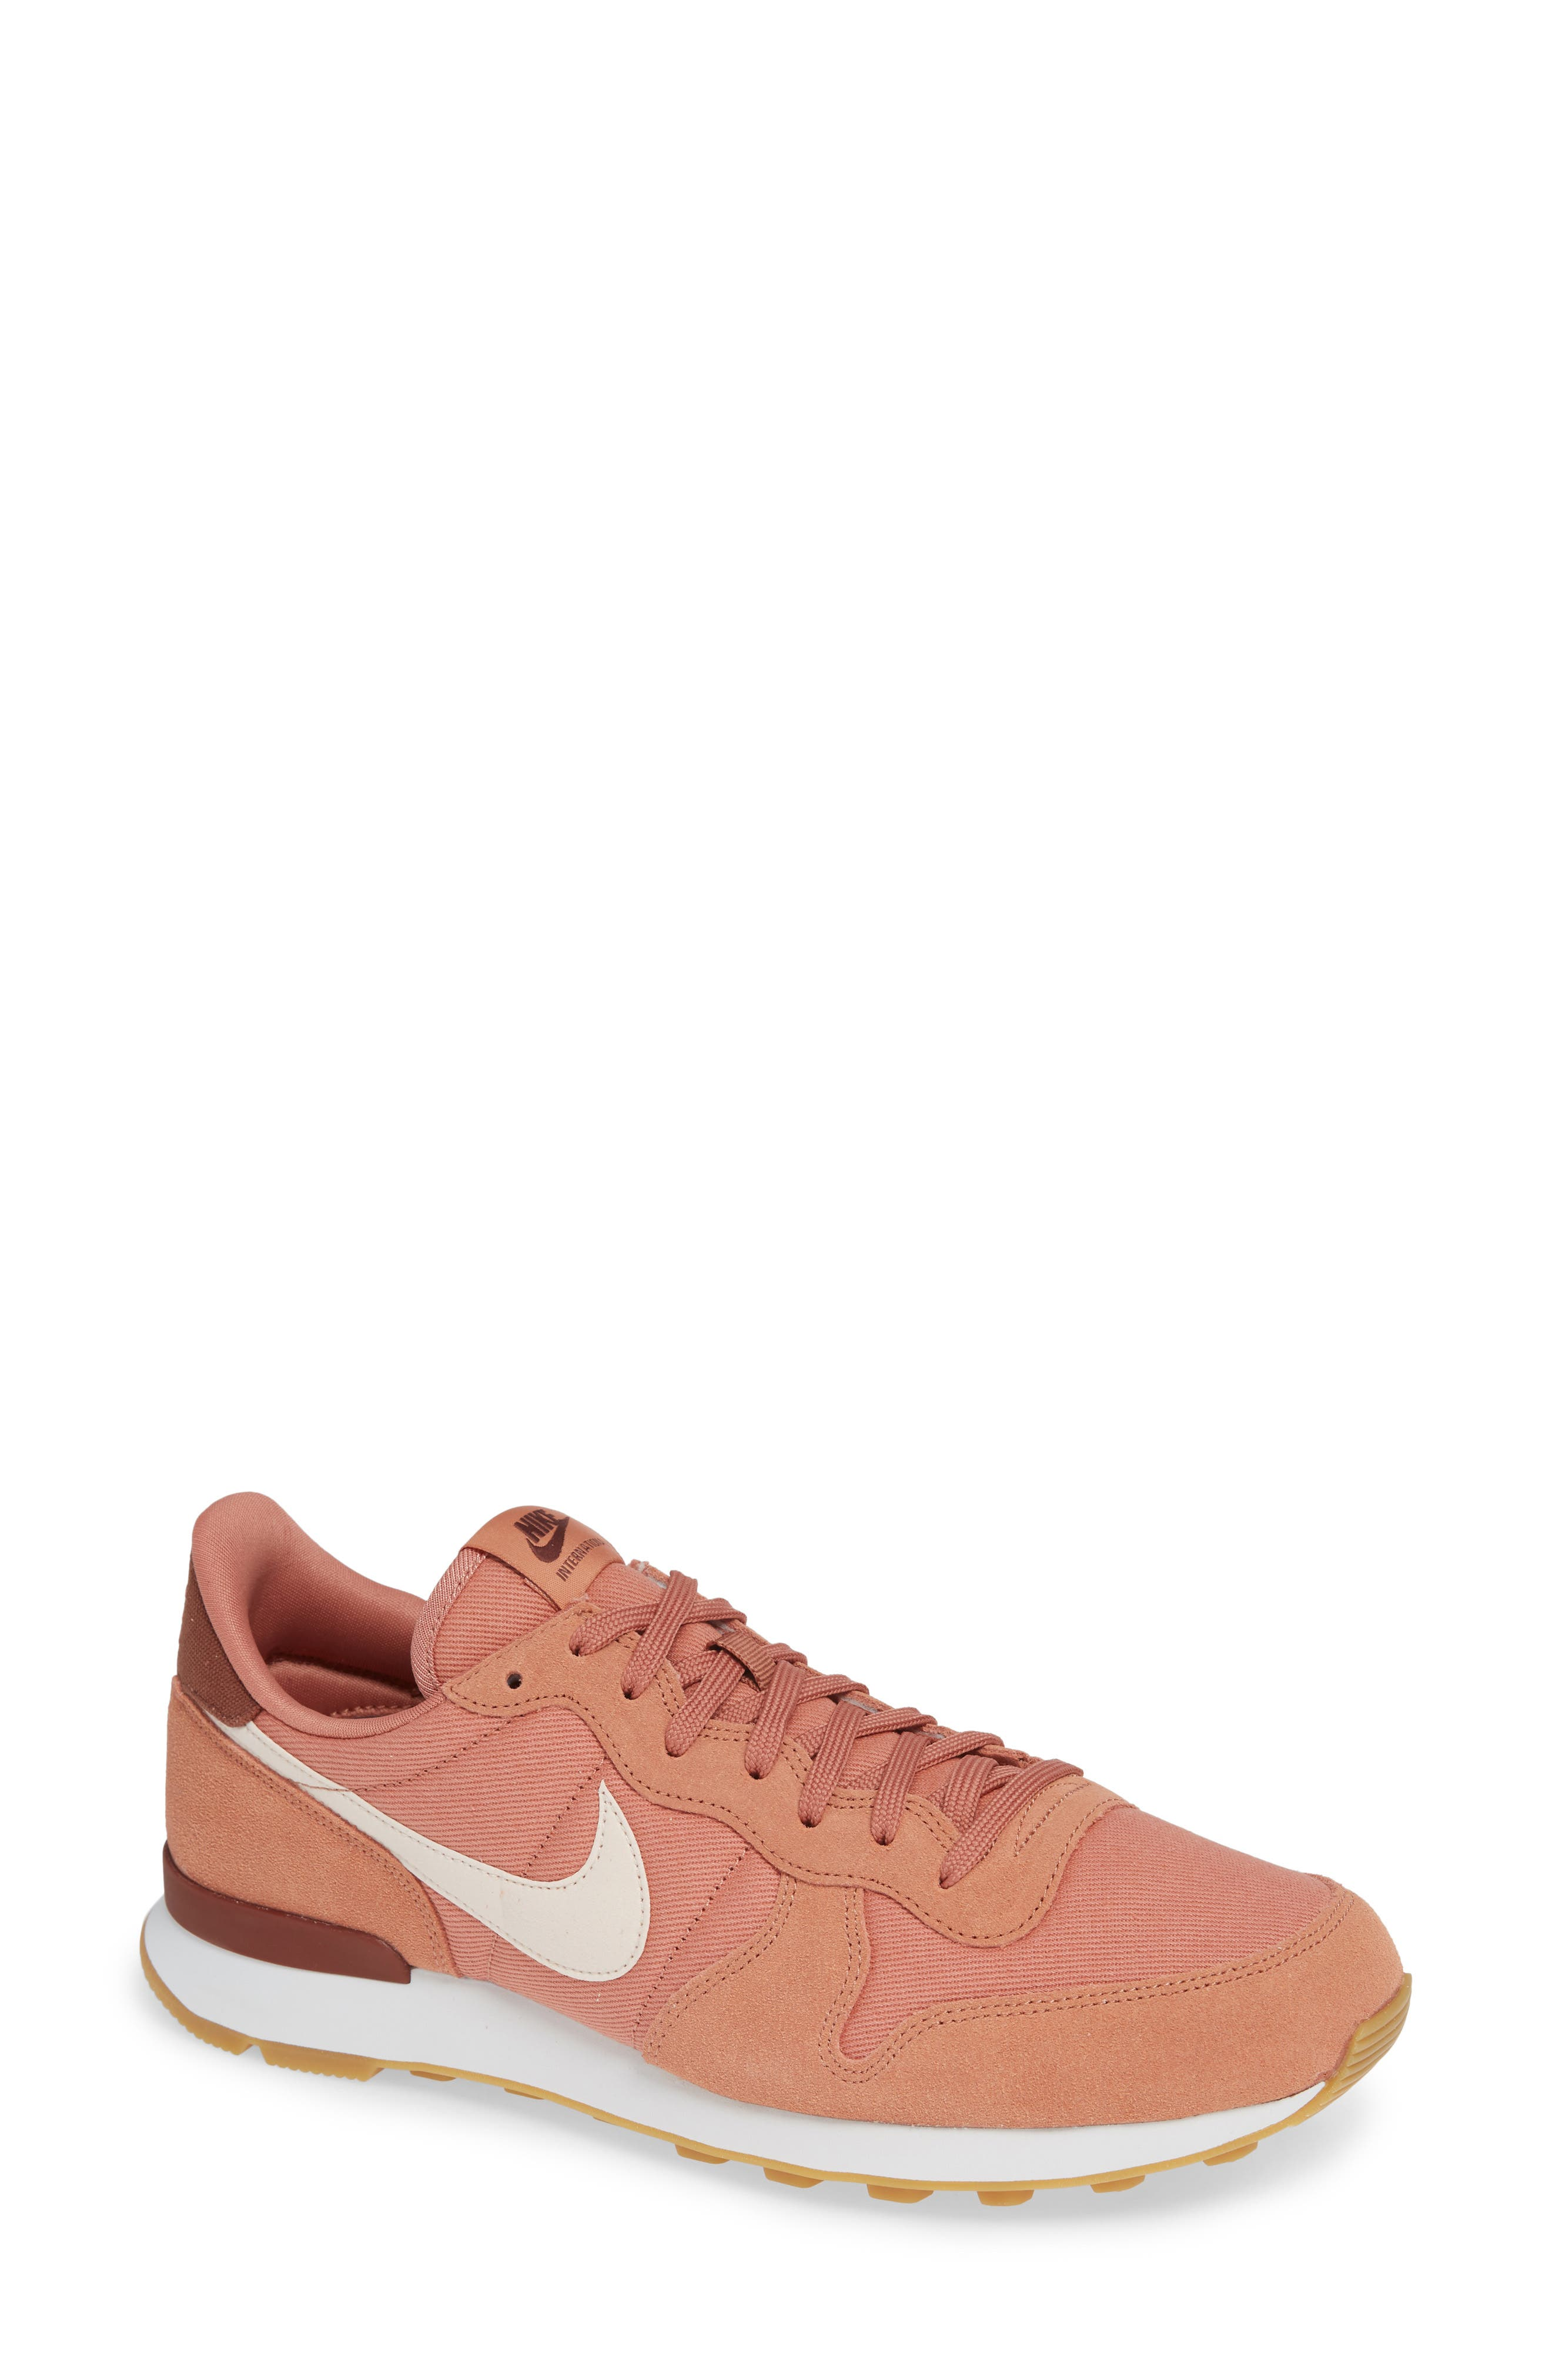 'Internationalist' Sneaker,                         Main,                         color, 950